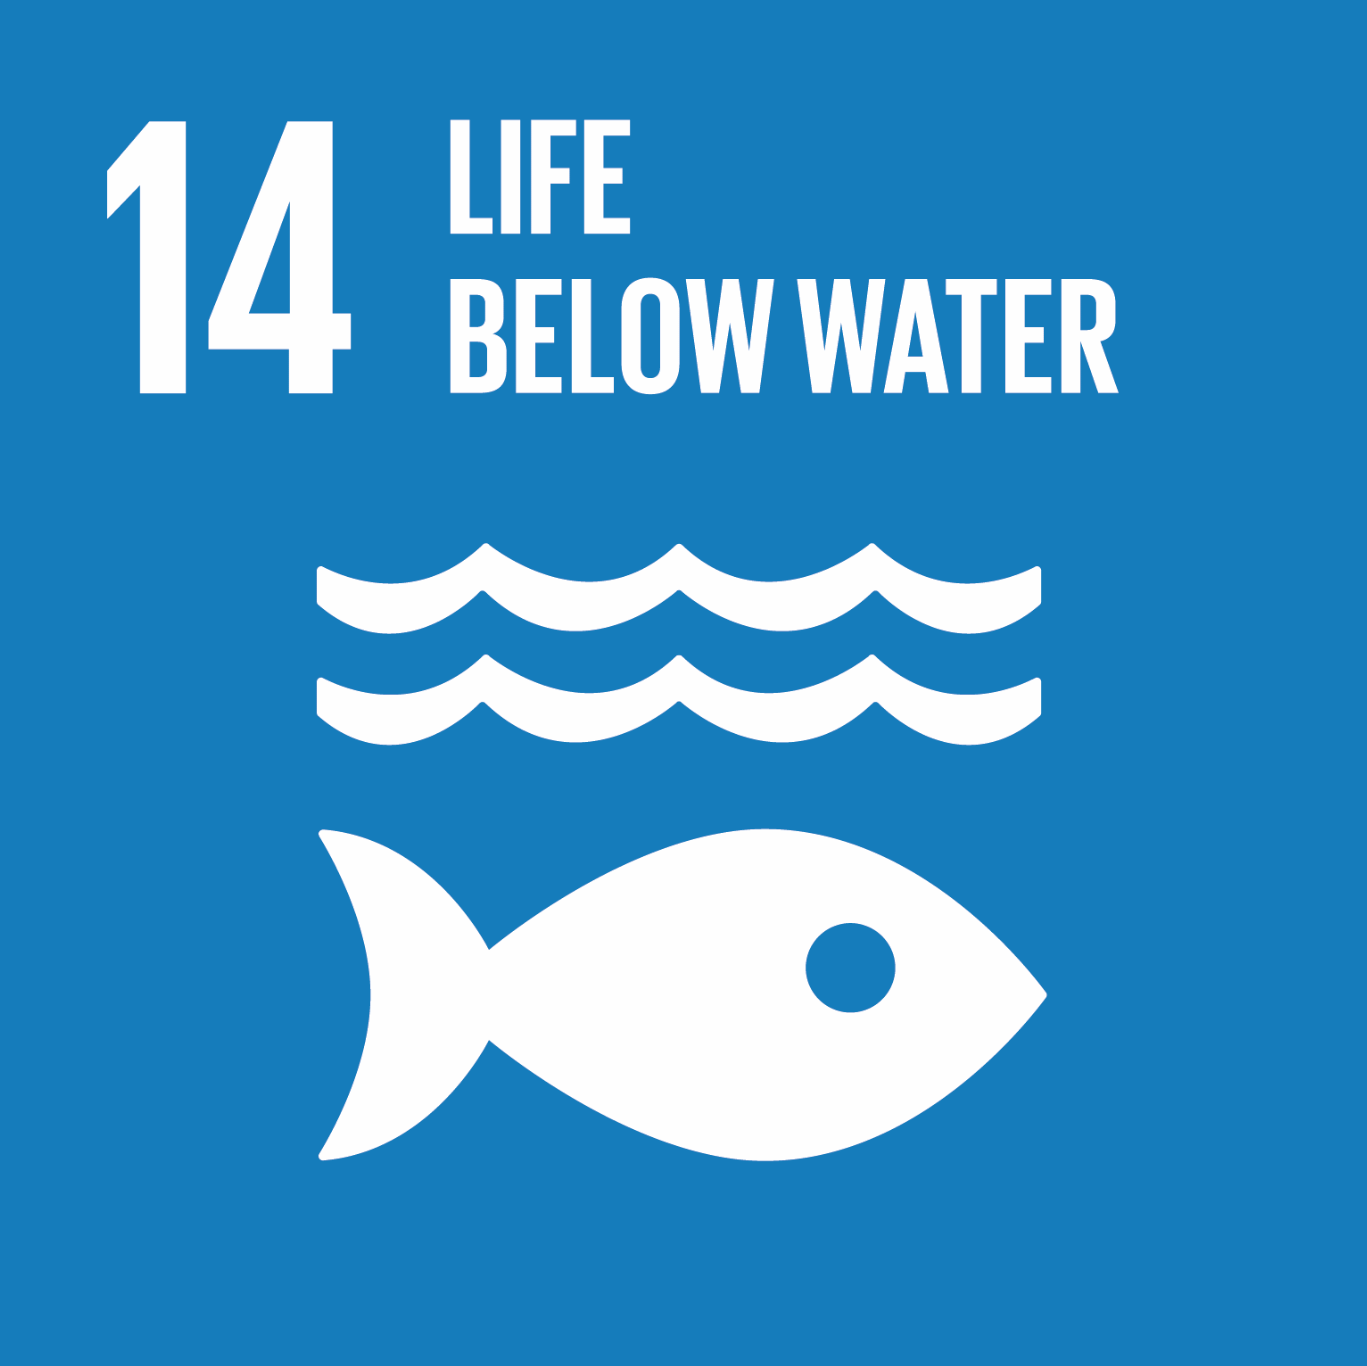 SDG14 - Life Below Water